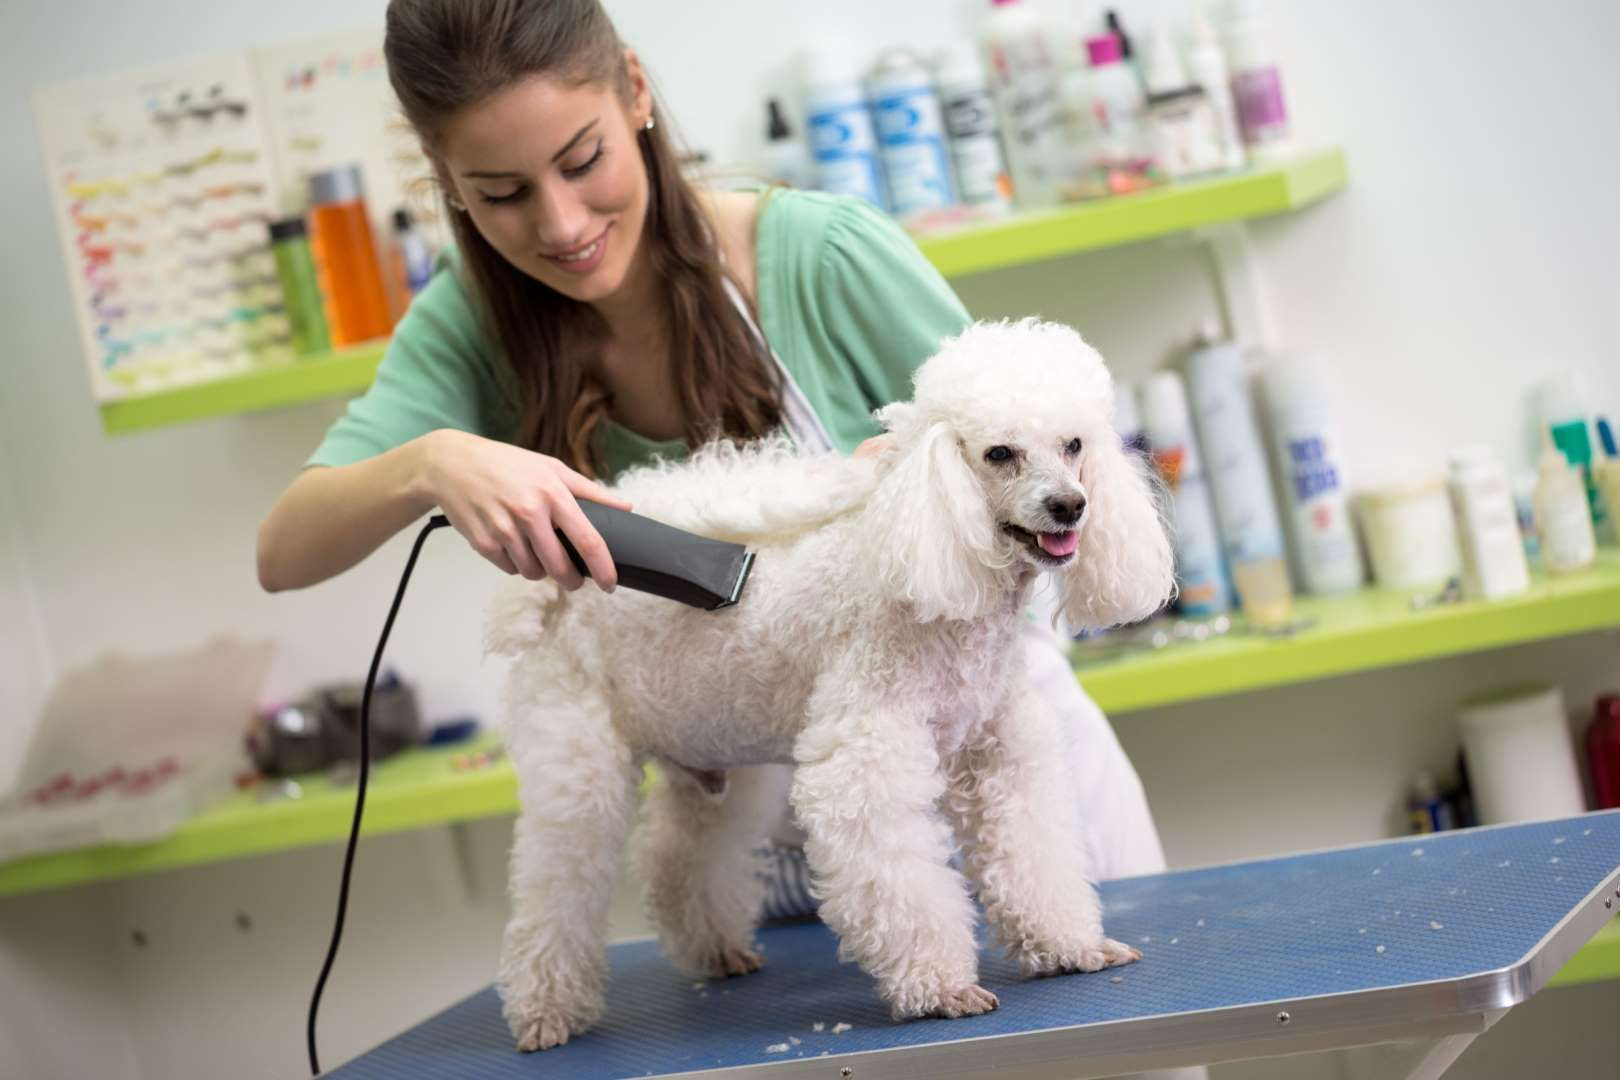 Smiling Woman Haircut White Poodle Luckybusiness Getty Images Dog Grooming Clippers Dog Clippers Dog Groomers